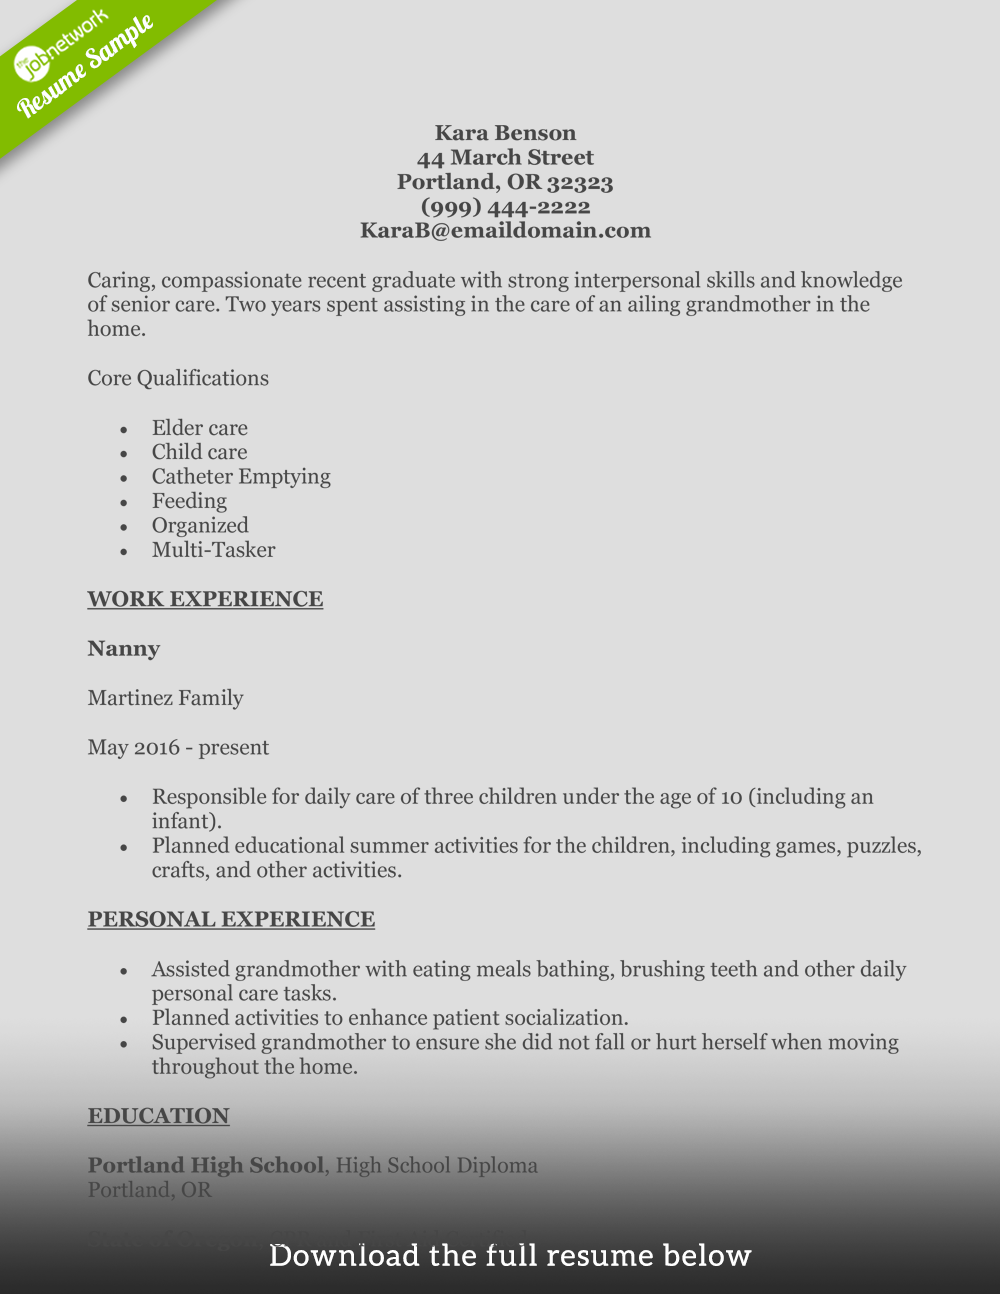 How to Write a Perfect Home Health Aide Resume (Examples ...